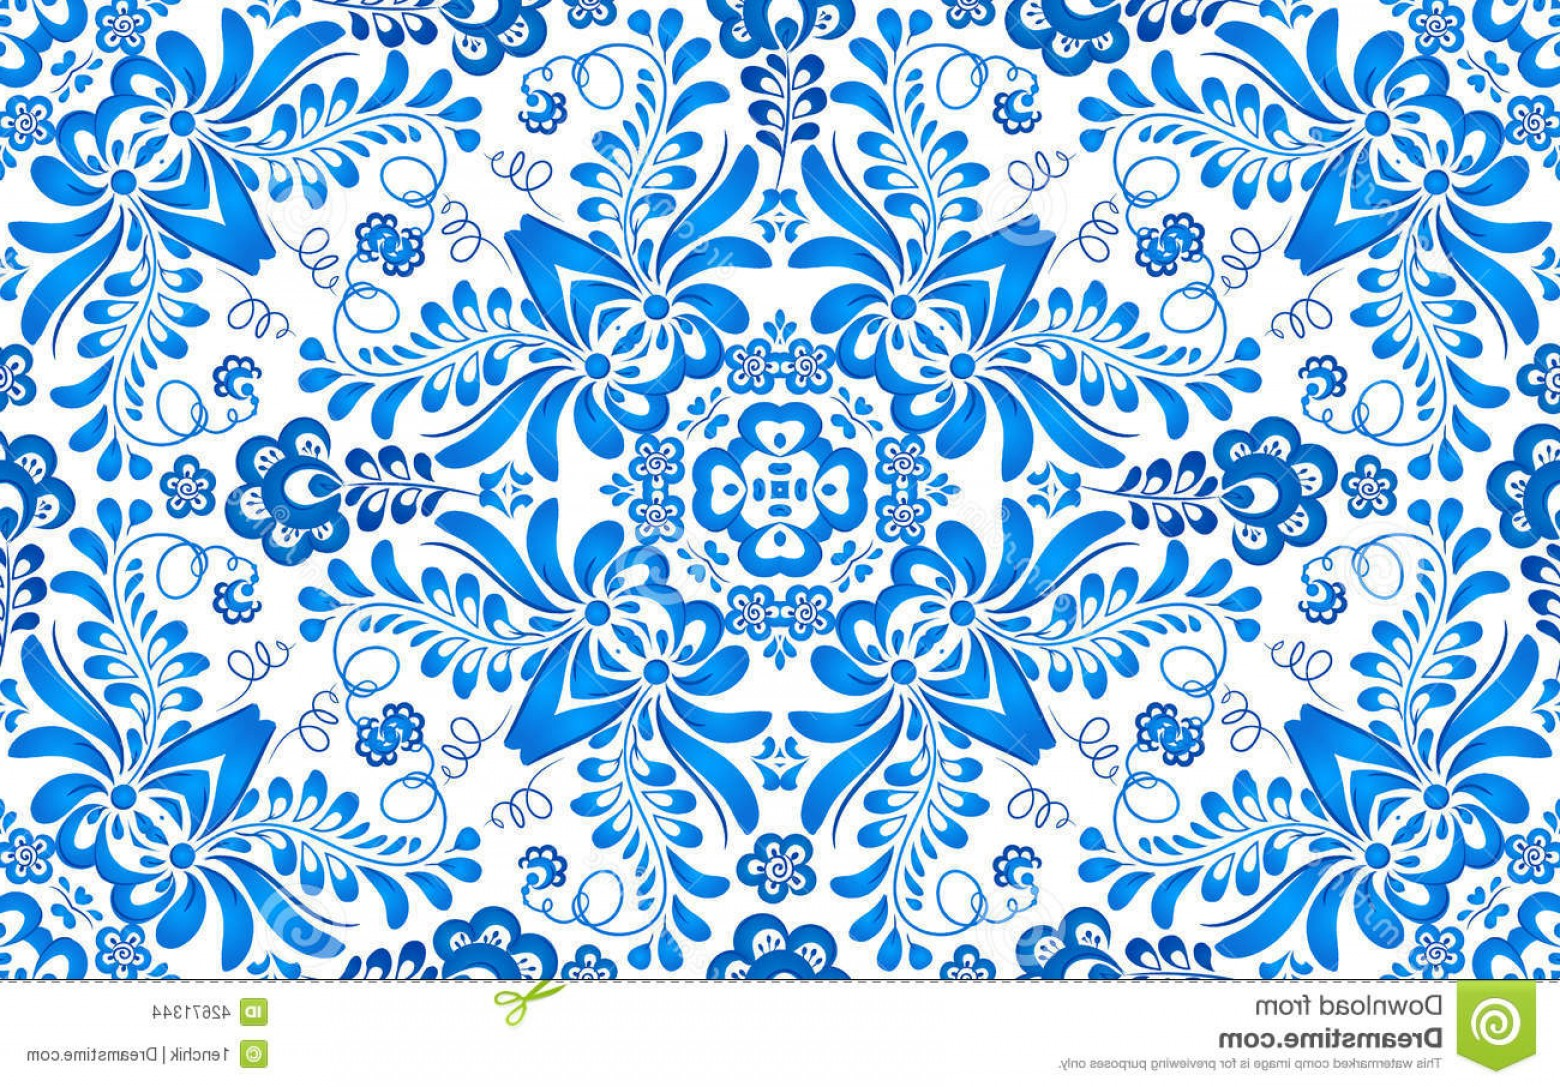 Russian Patterns Vector: Stock Illustration Blue Floral Seamless Pattern Russian Gzhel Vector Style Image